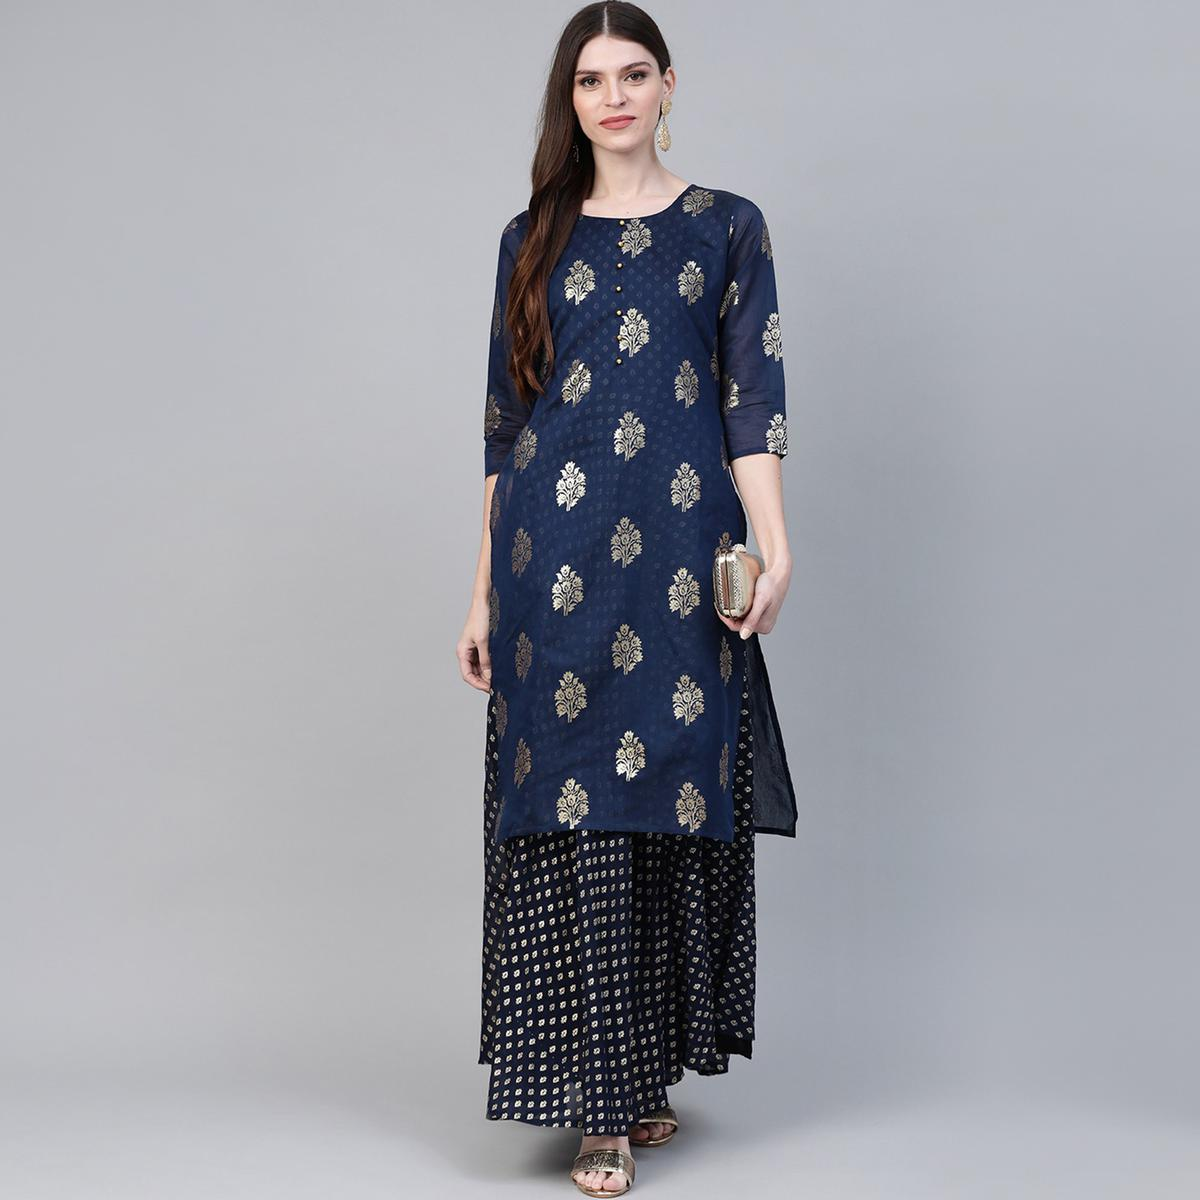 AHALYAA - Navy Blue Colored Chanderi Kurti Attached with Gown